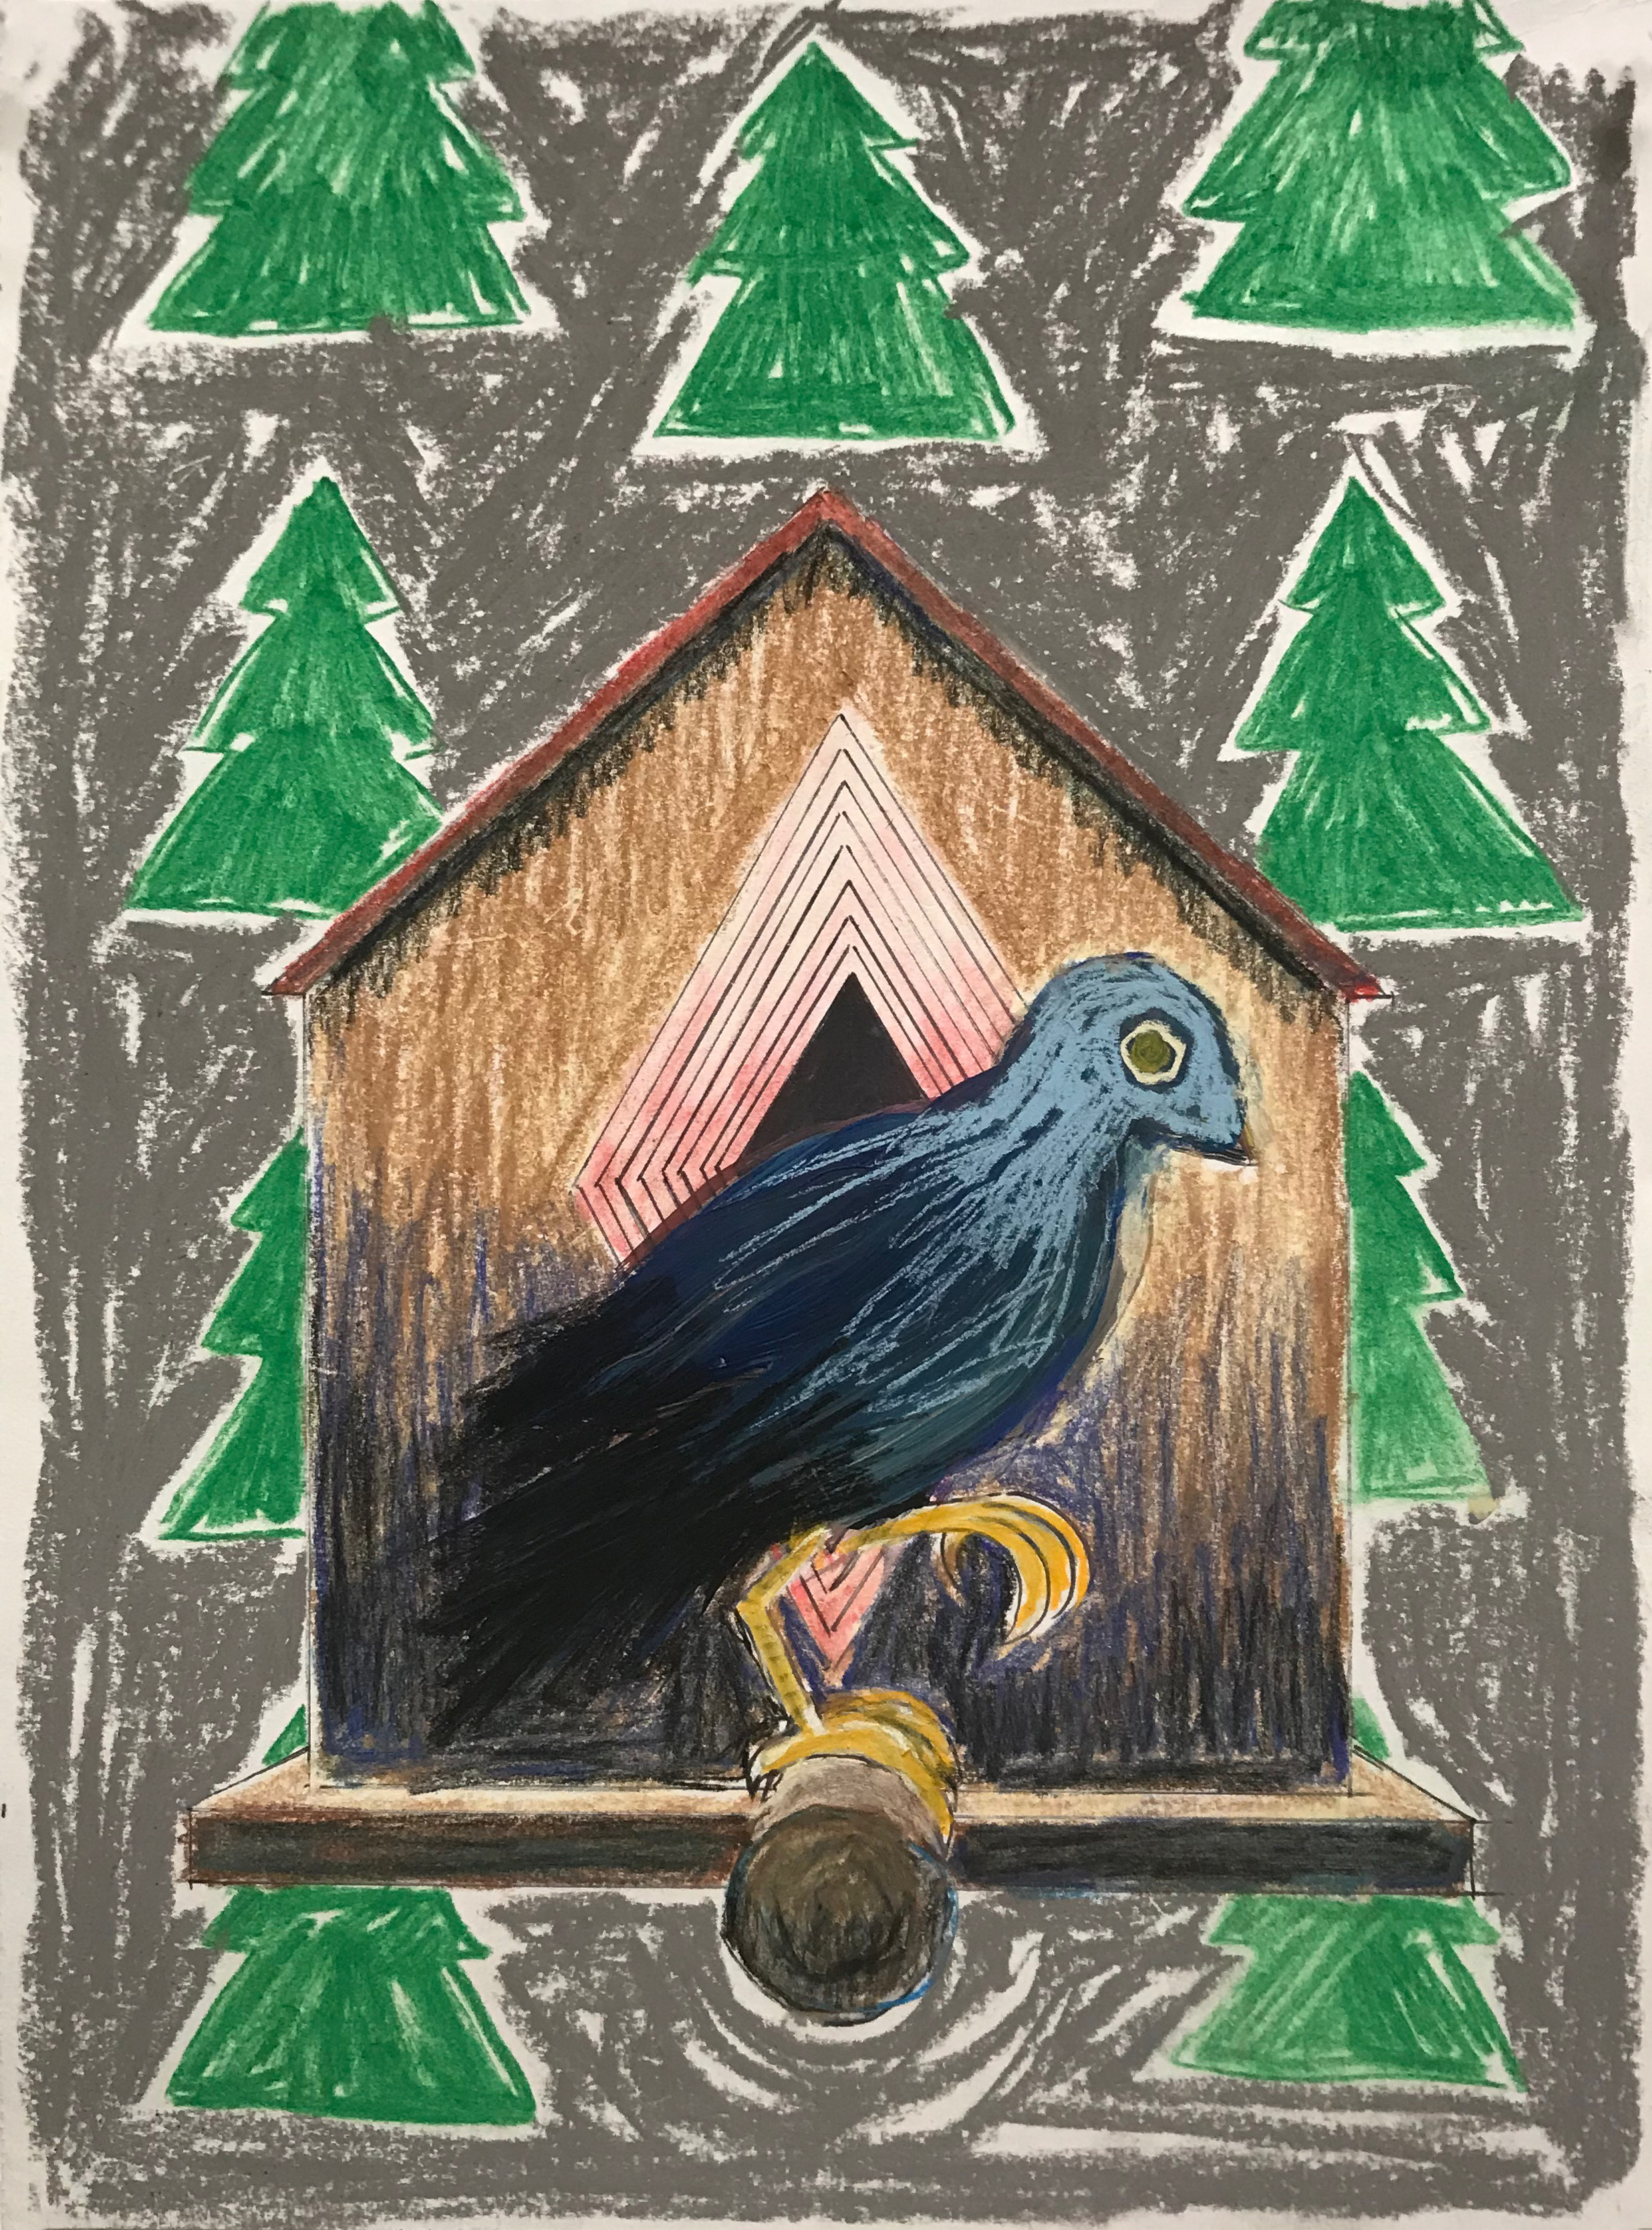 Birdhouse Dream   ink, acrylic, and pastel on paper  9 X 12 inches  2019